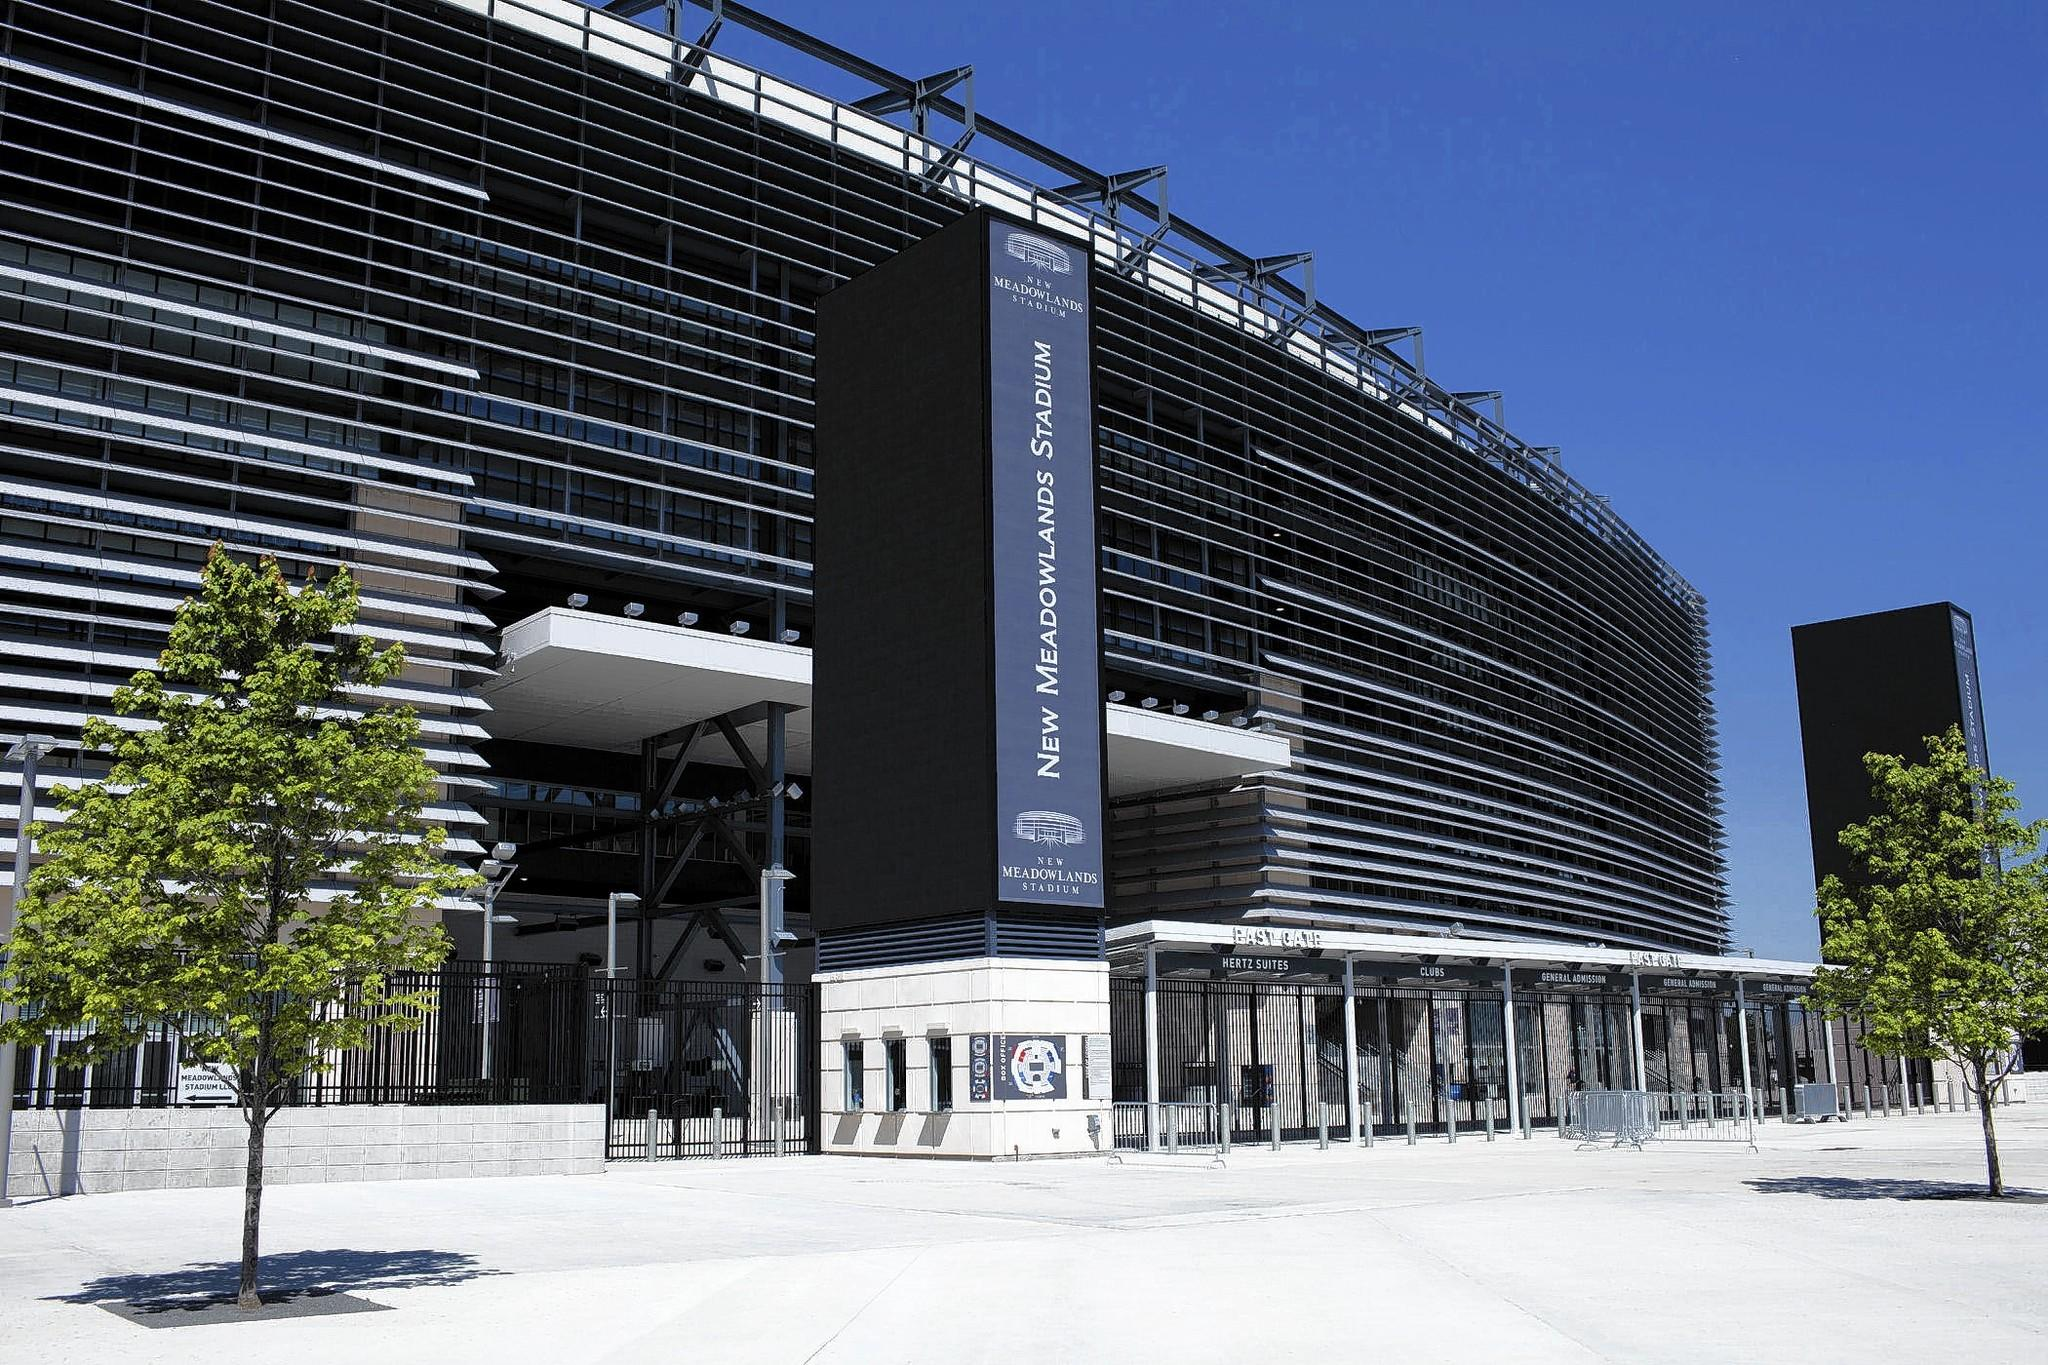 MetLife Stadium in the Meadowlands in East Rutherford, N.J., will host the first outdoor, cold-weather Super Bowl on Feb. 2. The cost to get in, especially if you want to stay warm while watching the game, could make your blood run cold.